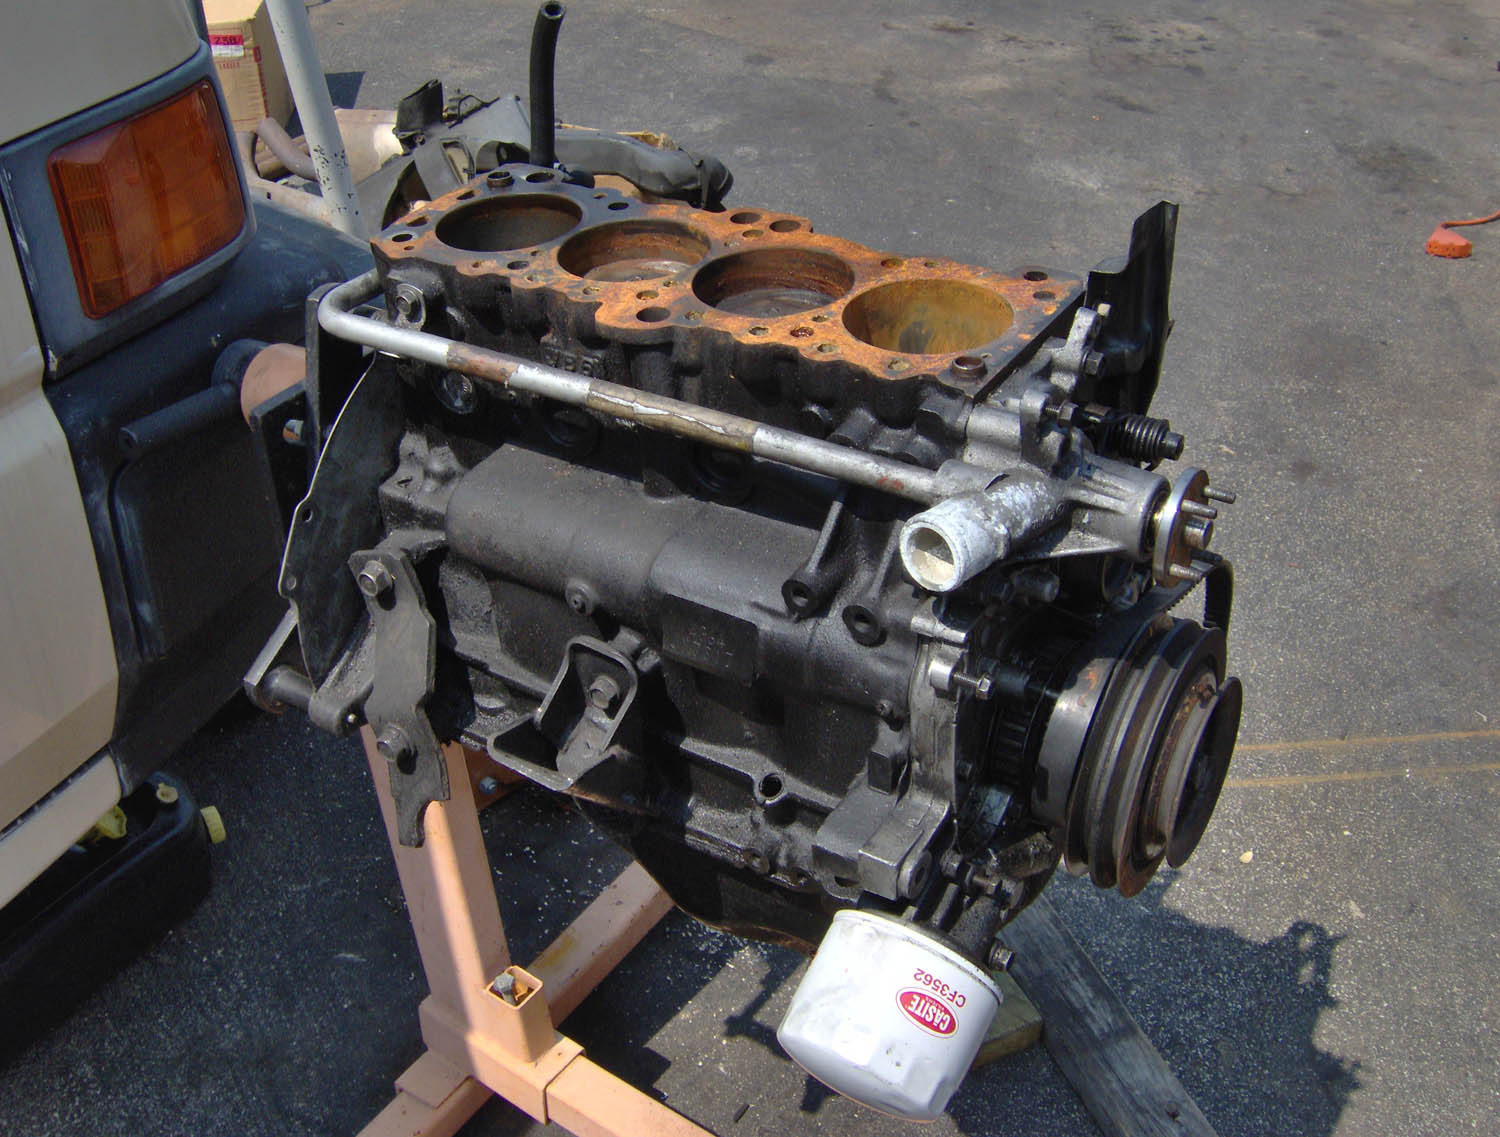 FS '87 4G64 (wide) short block - $100 - NorCal - Parts for